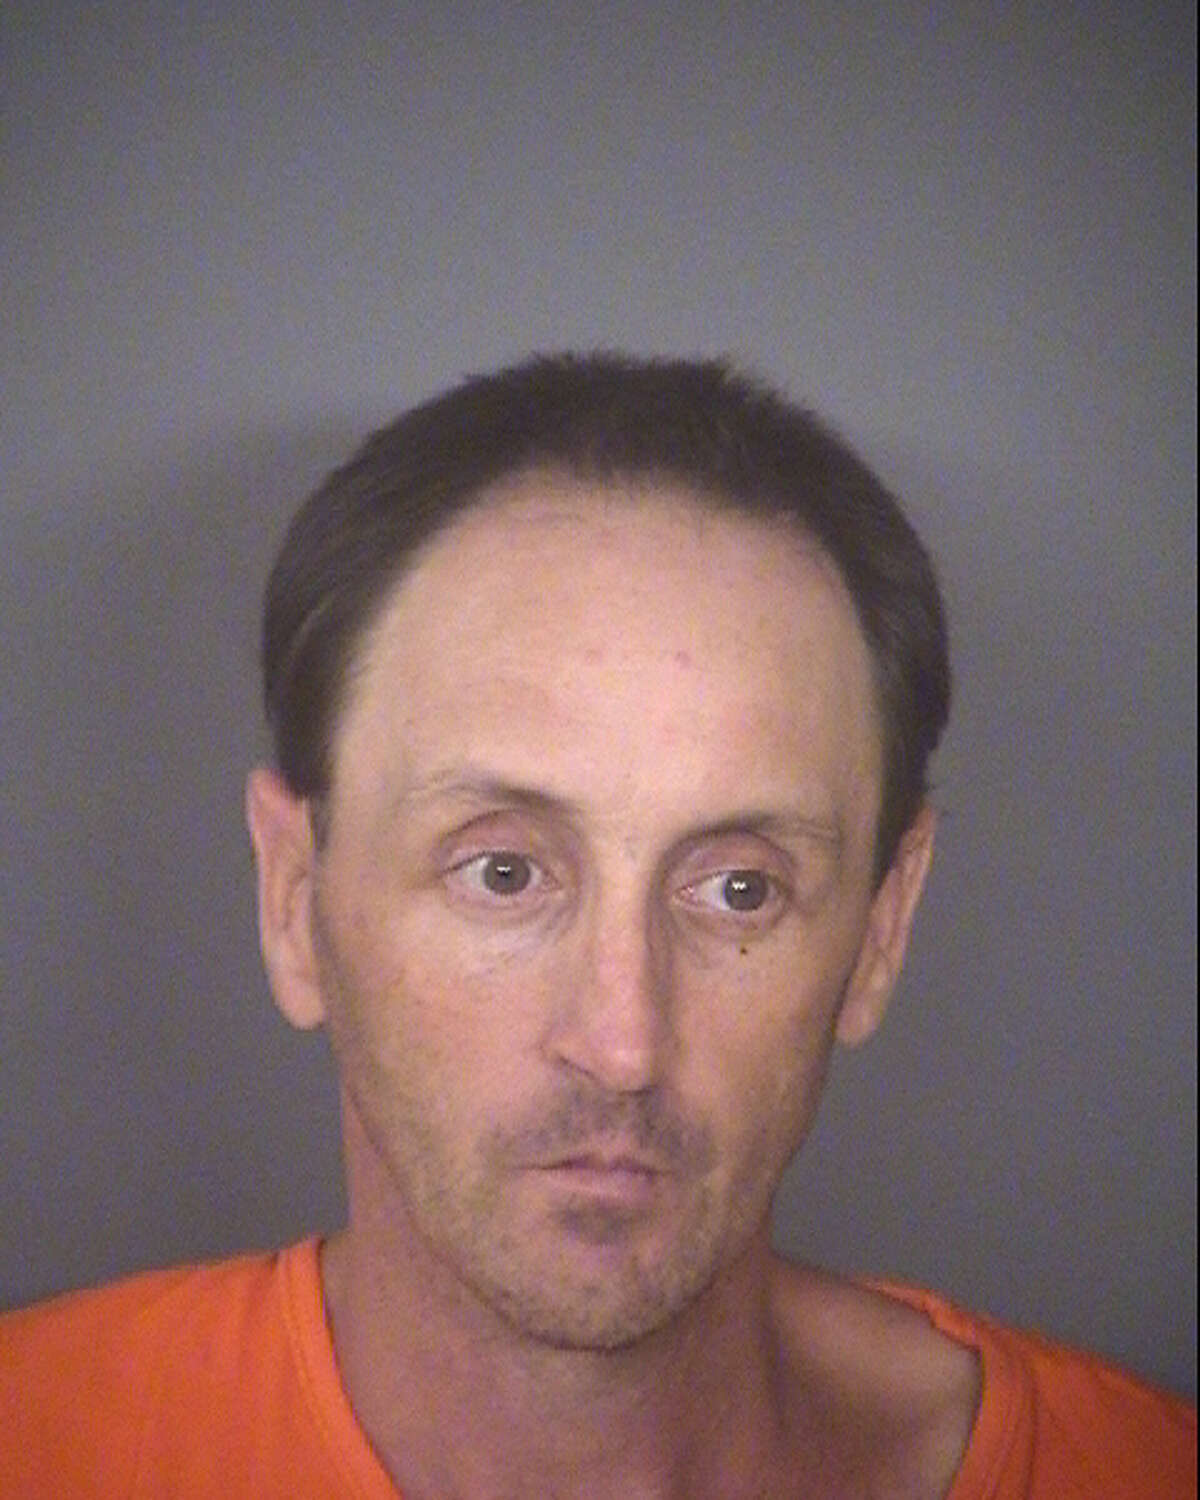 Jason Paul, 43, is charged with retaliation.